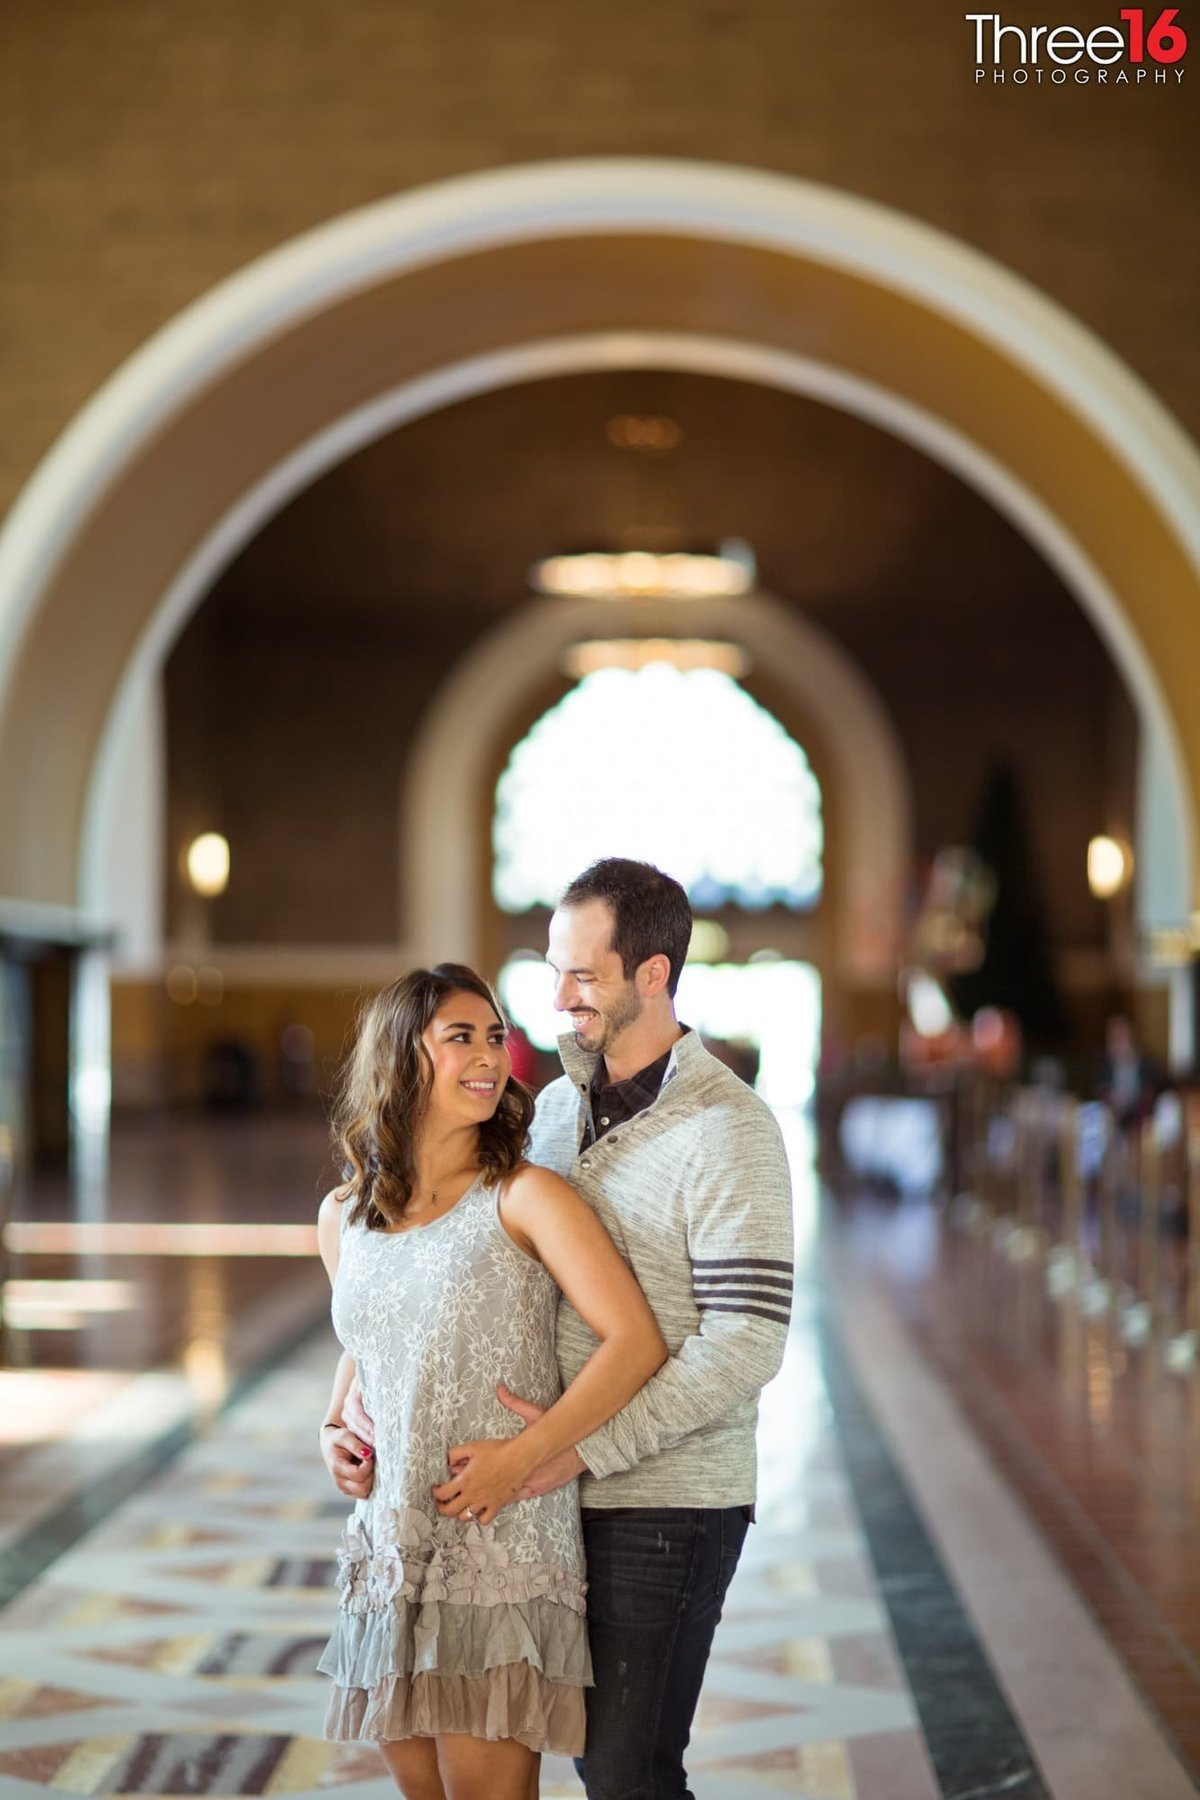 Los Angeles Union Station Engagement Photos LA County Wedding